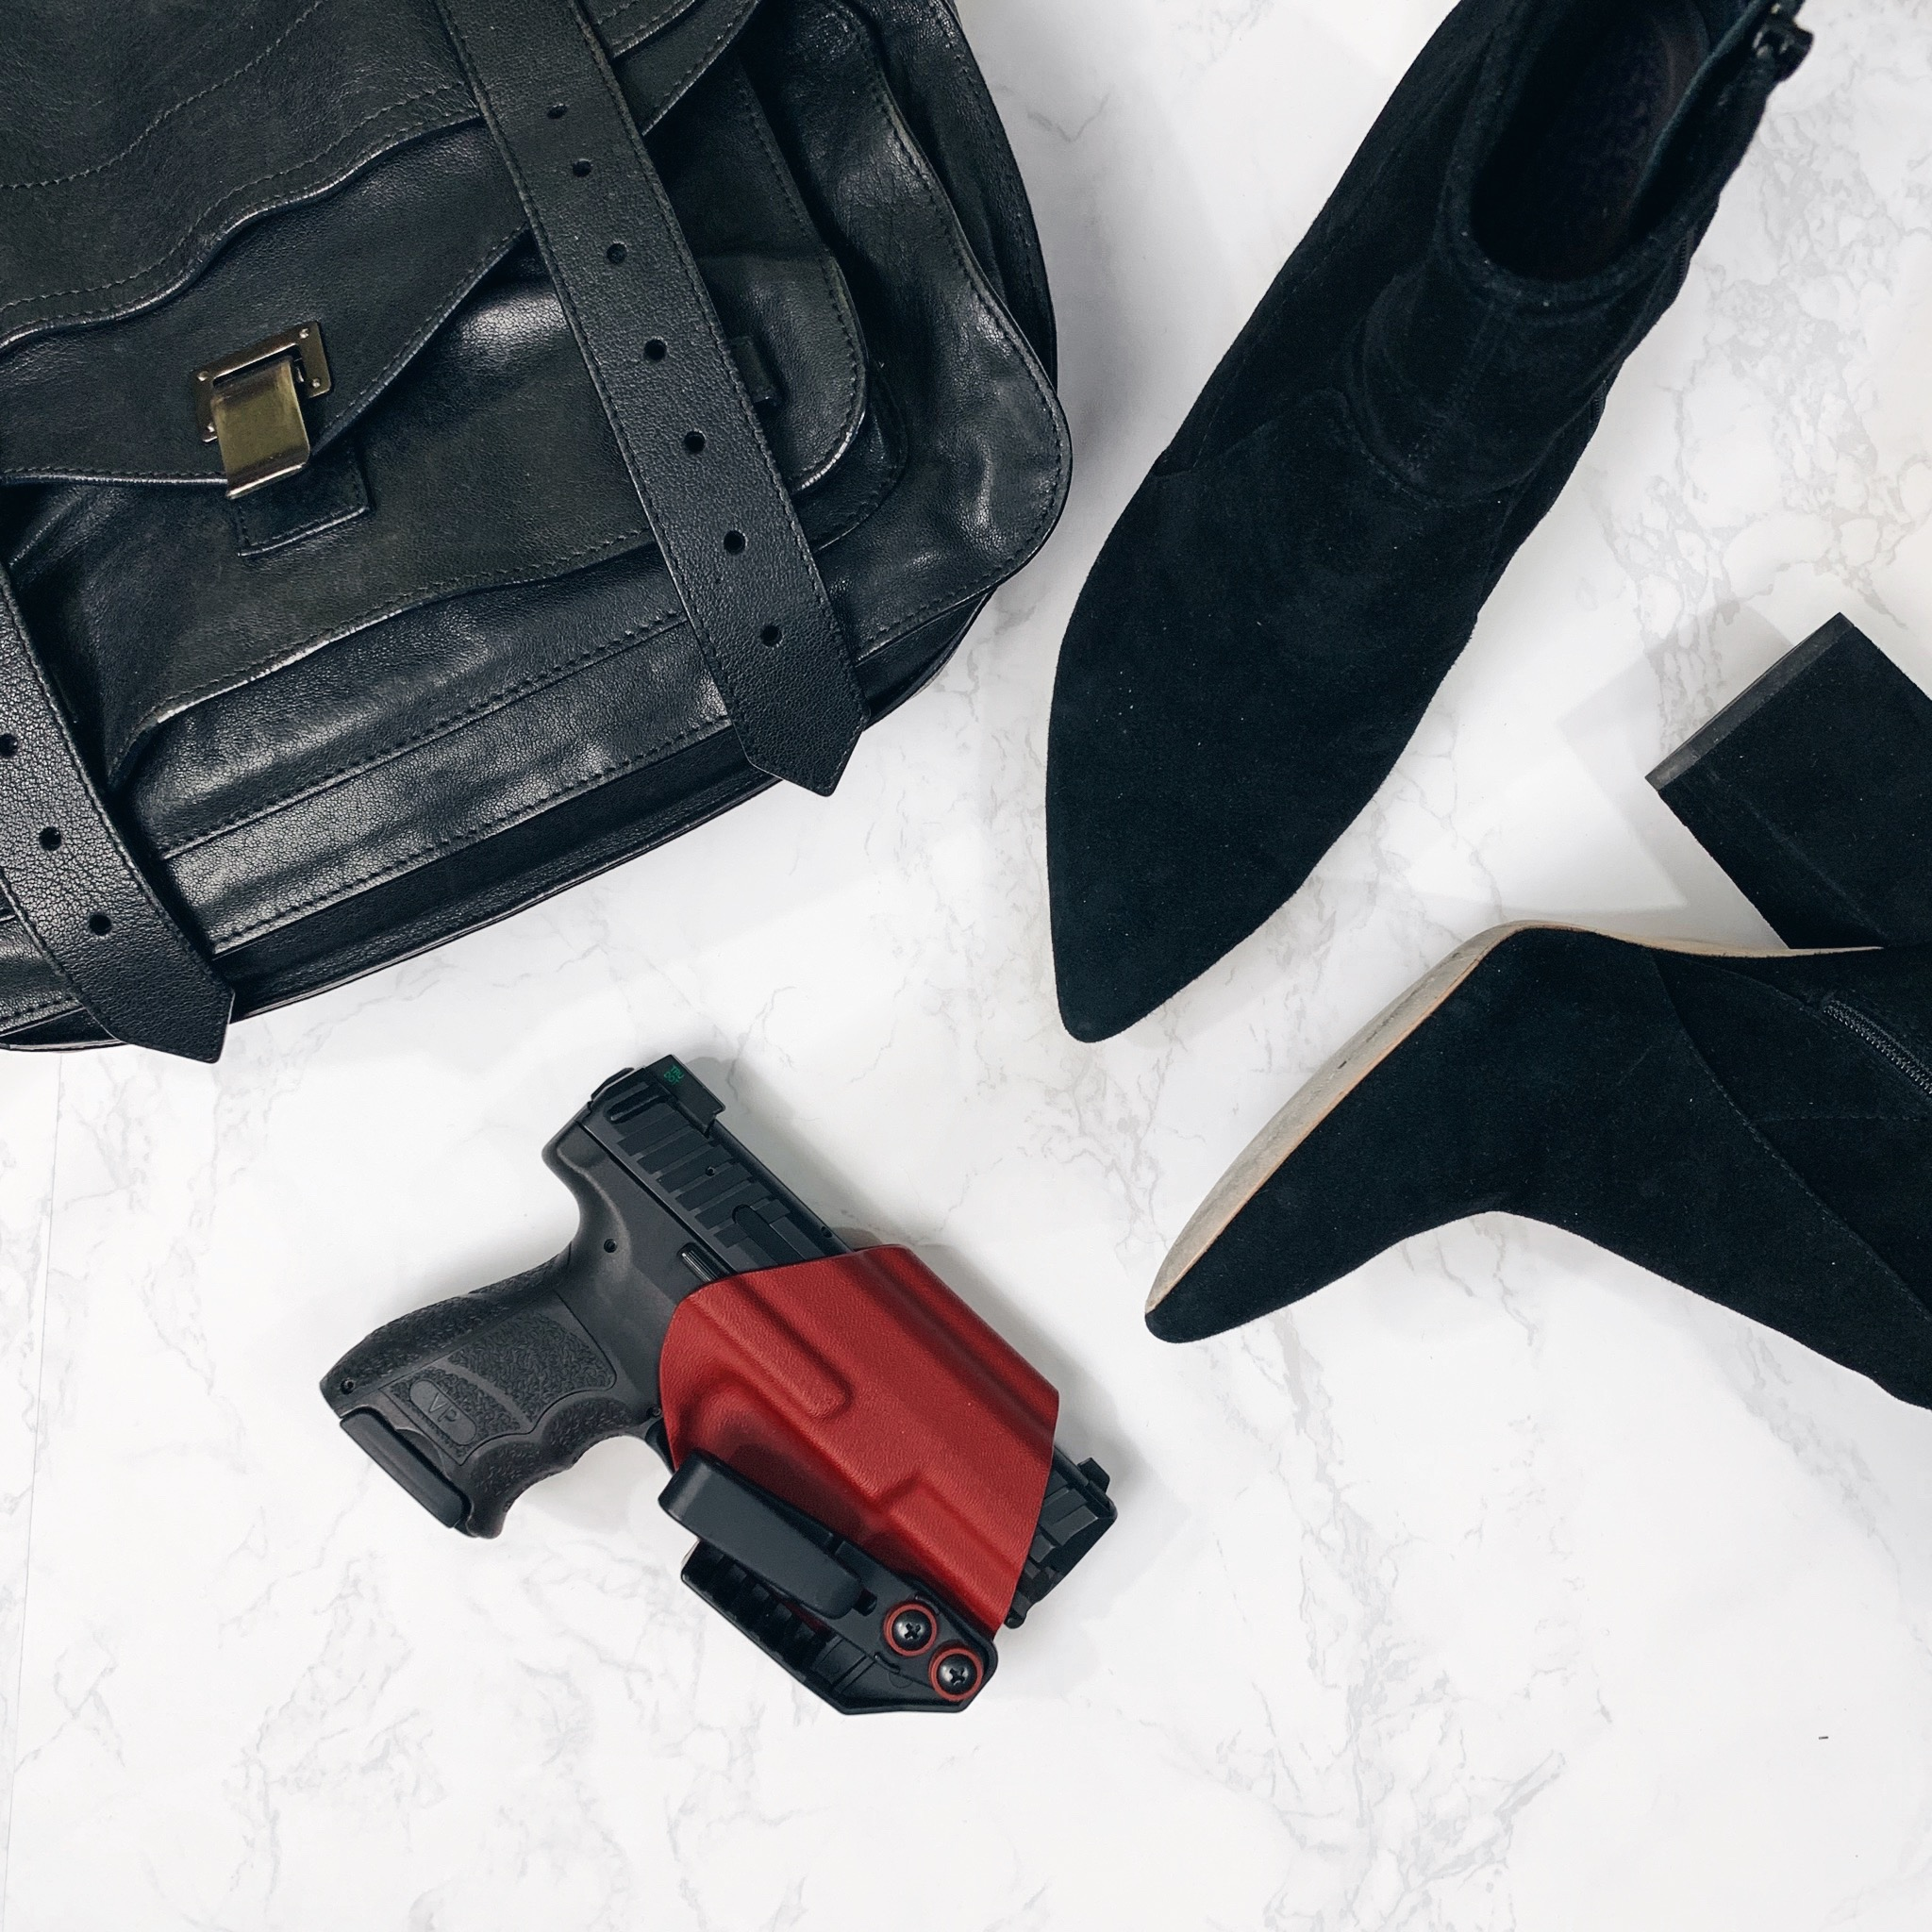 Concealed Carry for Women, Women's Concealed Carry Tips, Heckler & Koch VP9SK, Loeffler Randall Isla Boots, Blacksmith Tactical